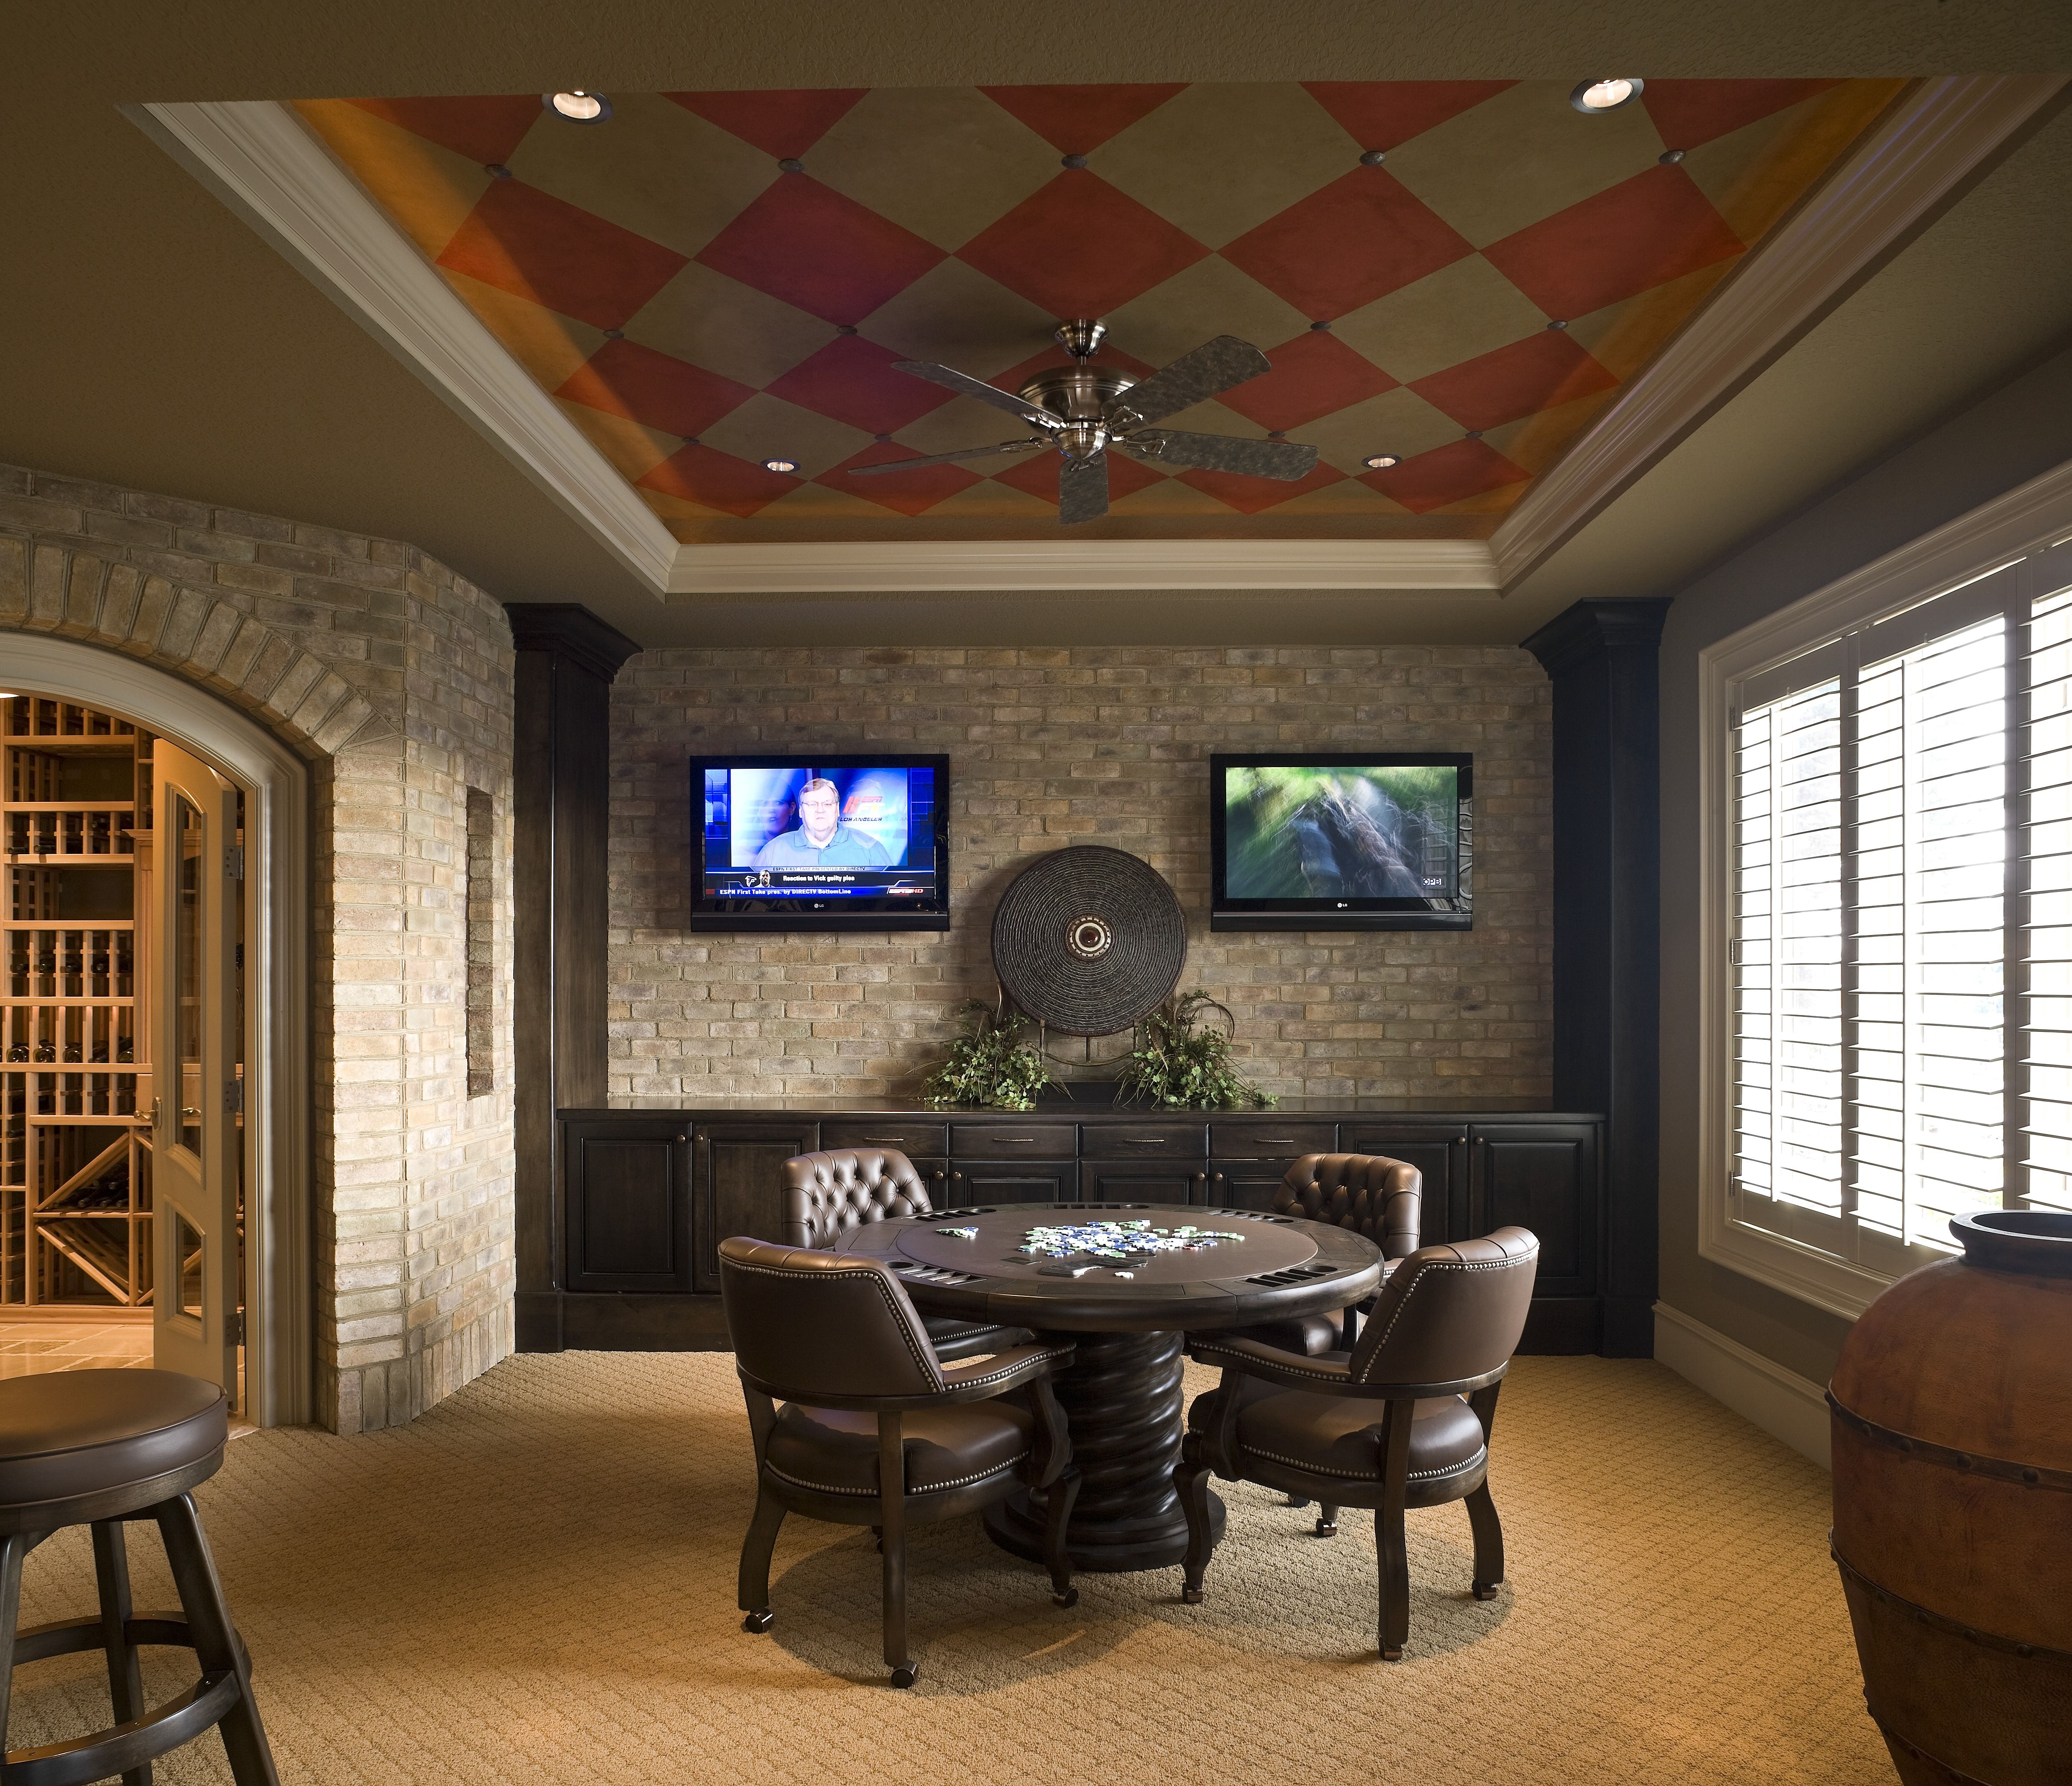 5 Must Haves For Creating The Ultimate Basement Home Theater: 10 Must-Have Items For The Ultimate Man Cave